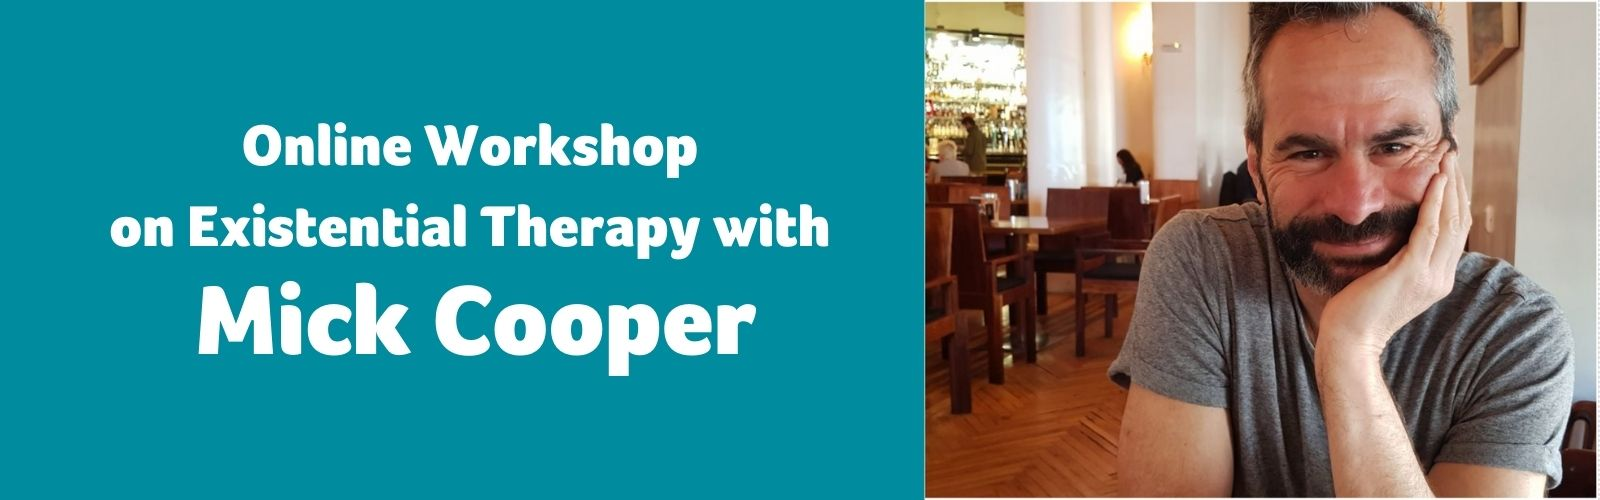 Online Workshop on Existential Therapy with Mick Cooper – 8th May 2021